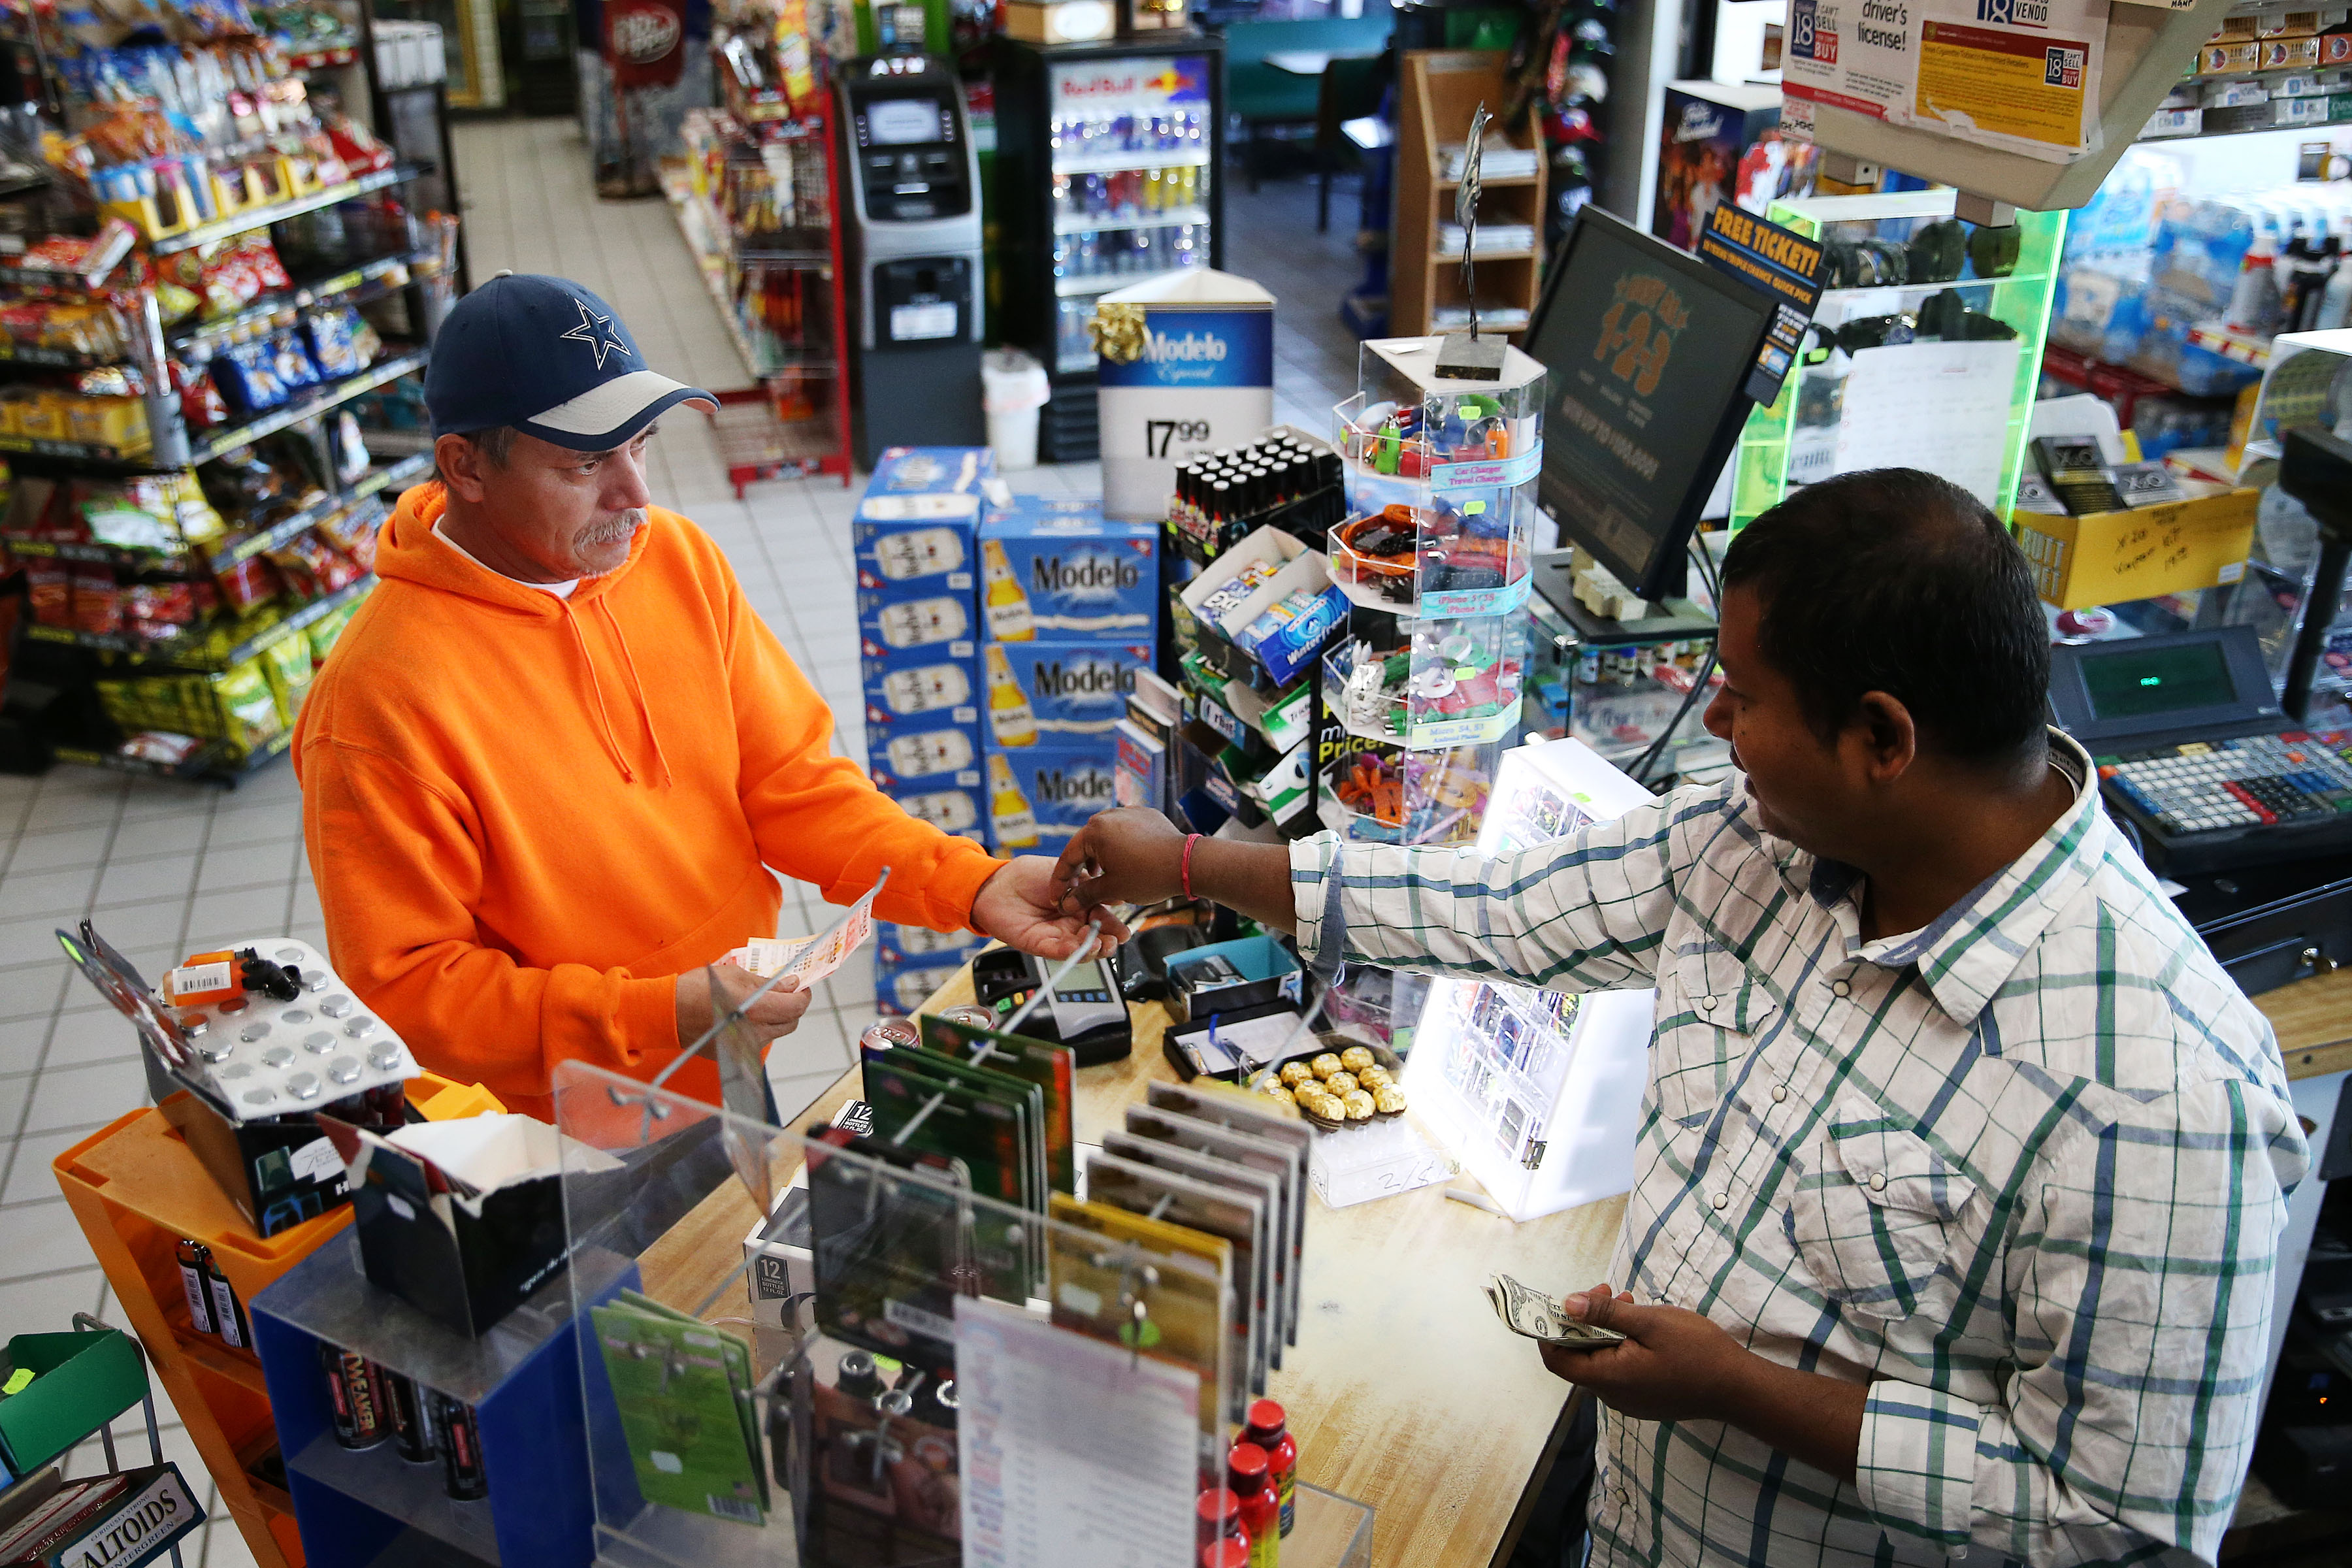 $1 6 billion Powerball jackpot goes to 3 winners in 3 states